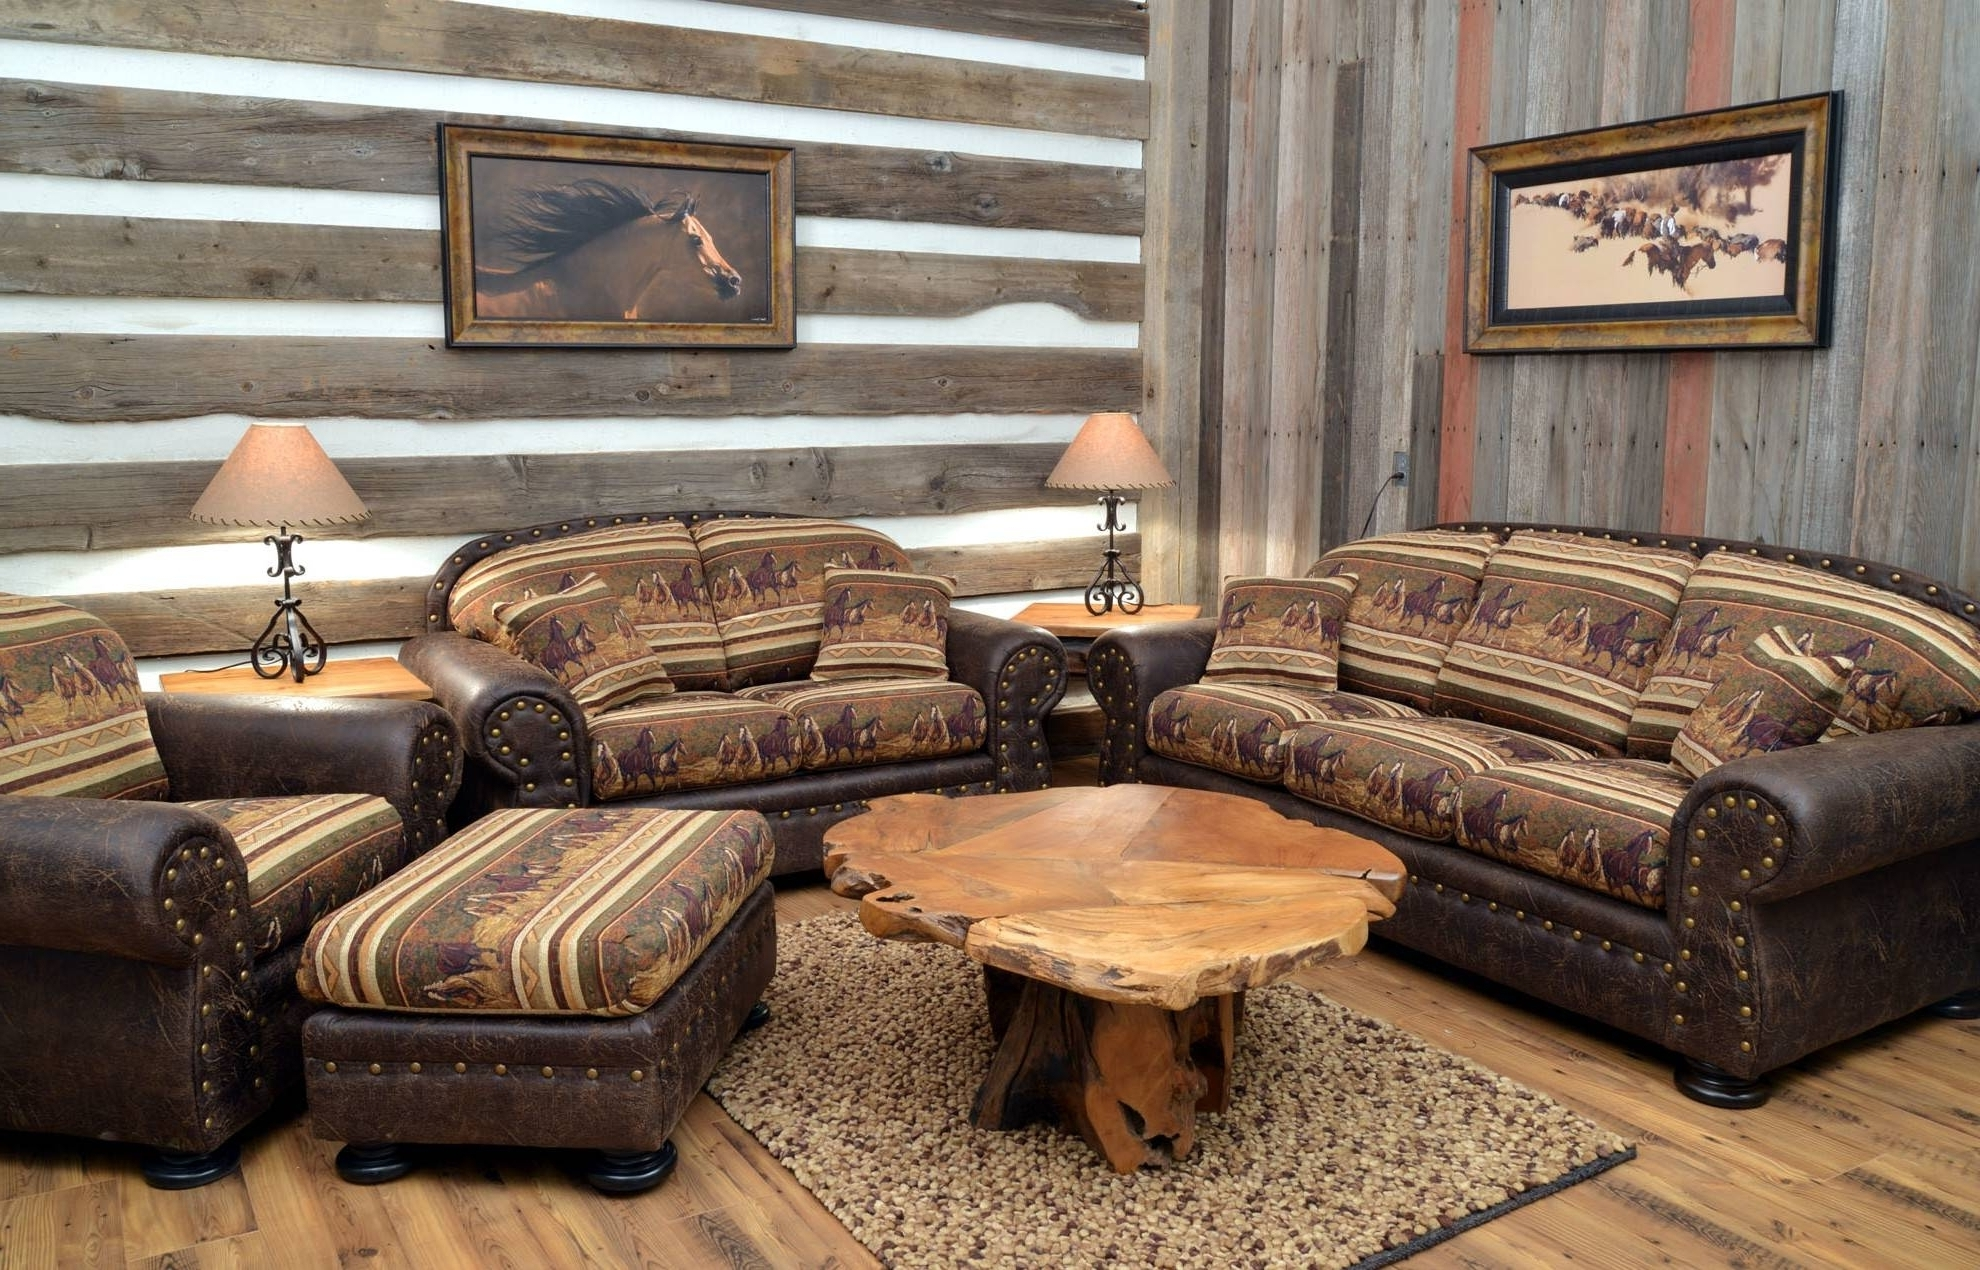 2019 Sofa Rustic Sectional Sofas With Recliners Style Leather Chaise Intended For Sectional Sofas In Stock (View 14 of 20)